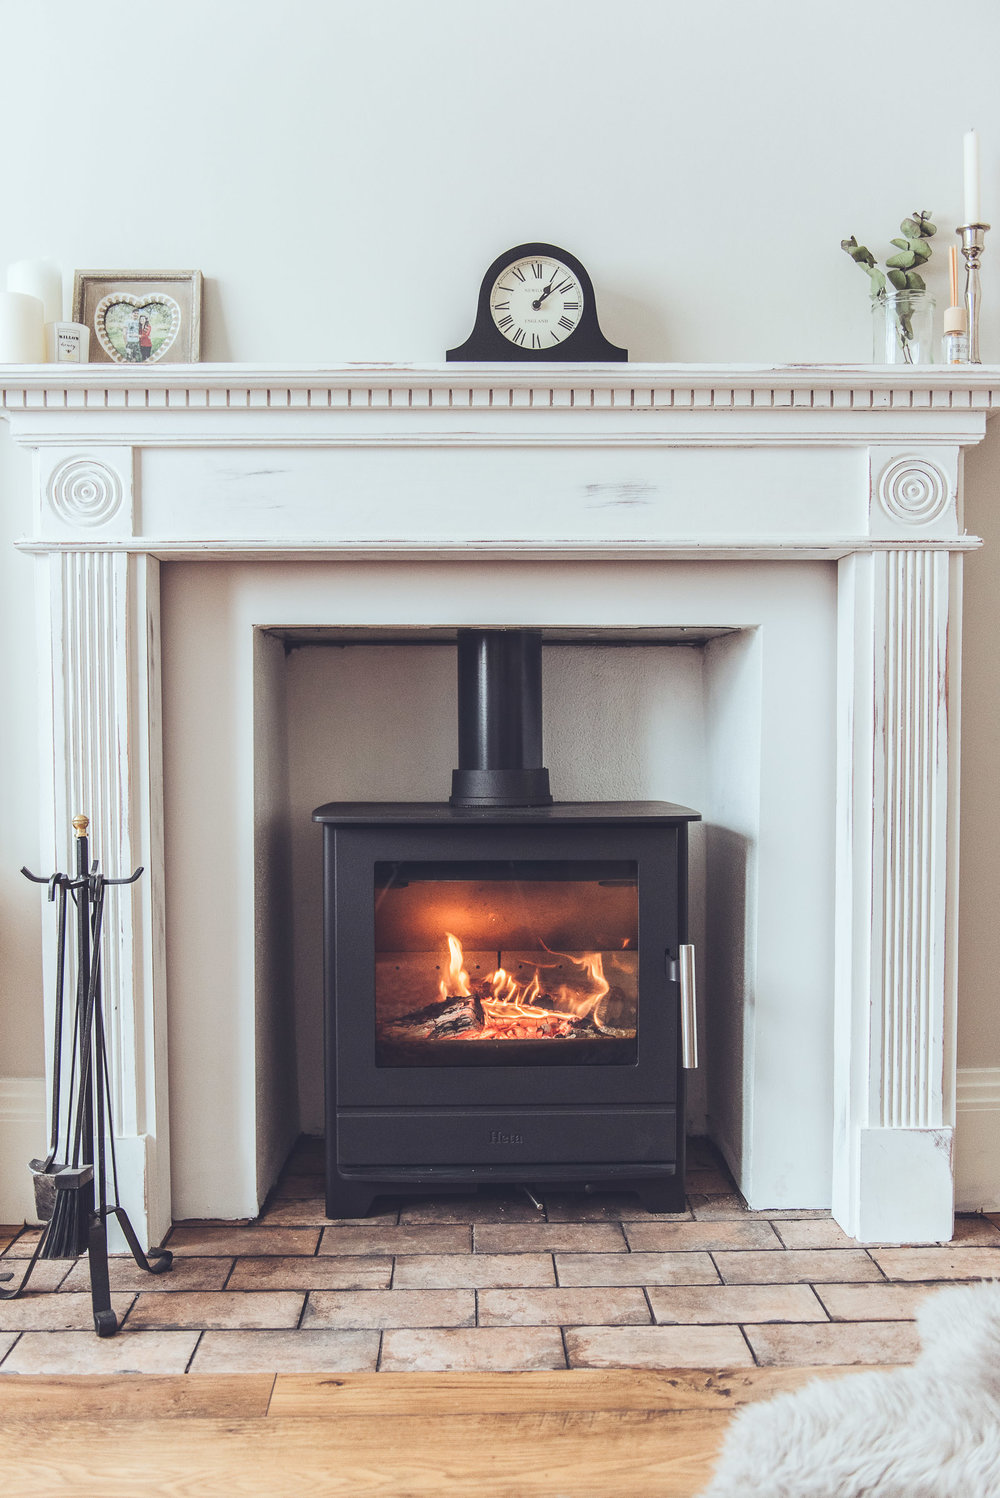 Heta Inspire wood burning stove, Local company in Brighton but also available  here , £999